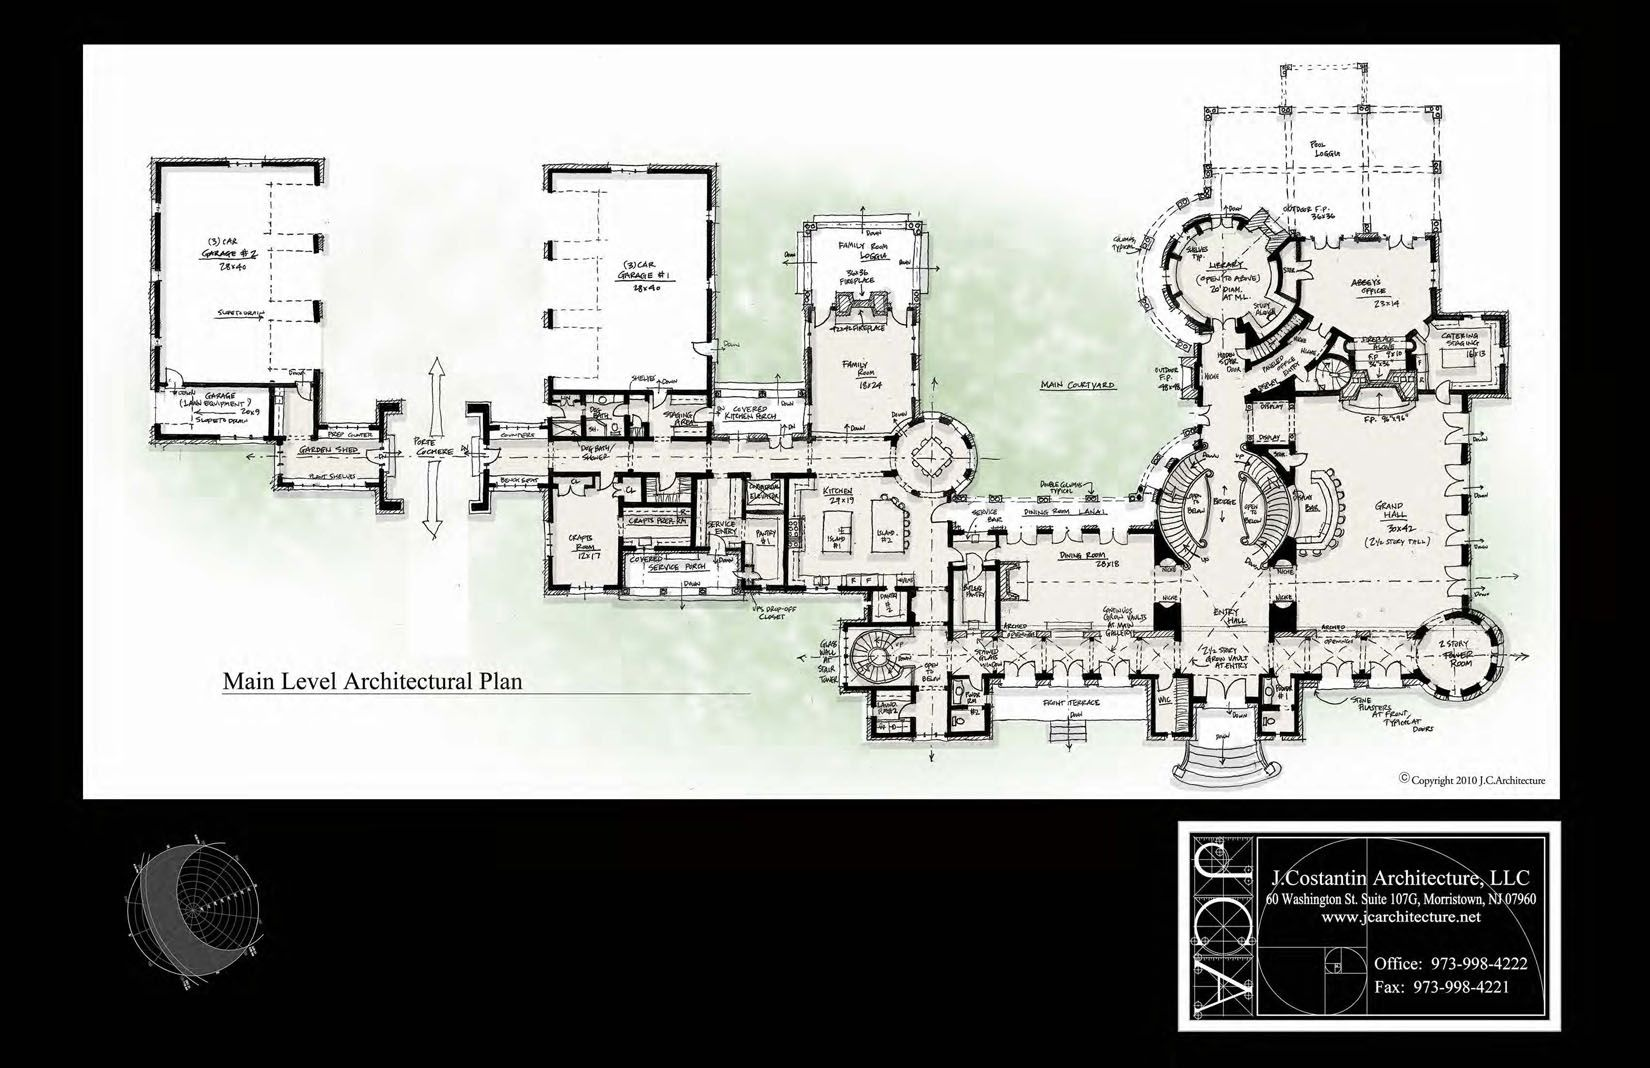 20000 Sq Ft House Plans | 20 000 Sq Ft First Floor J Costantin Architecture Colts Neck Nj